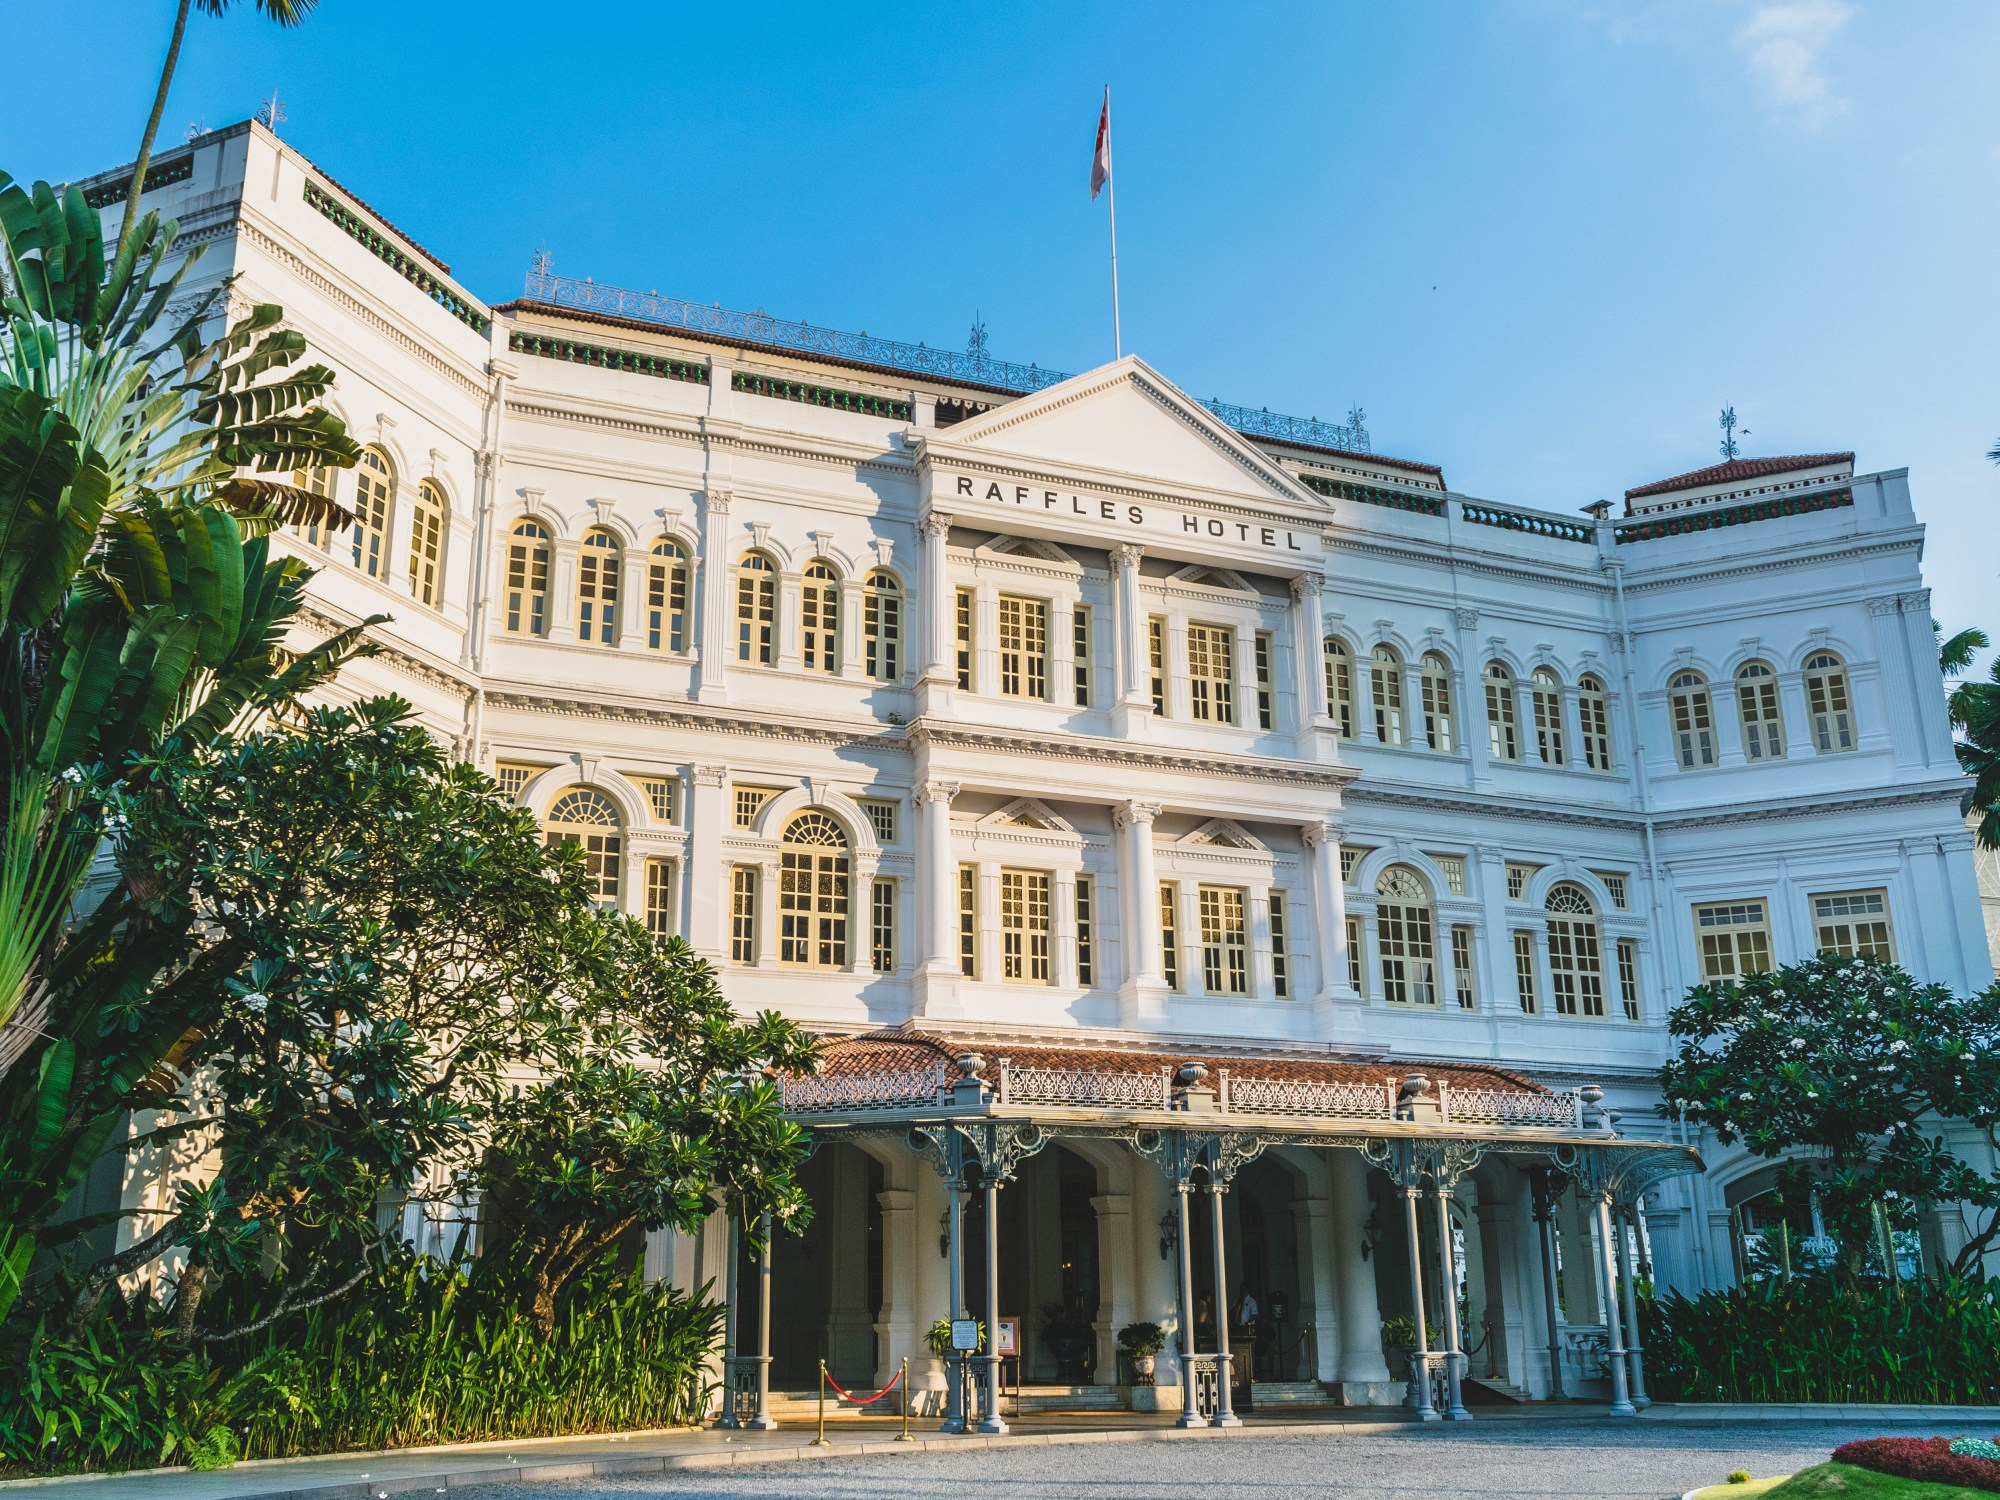 Afternoon tea at Raffles Hotel